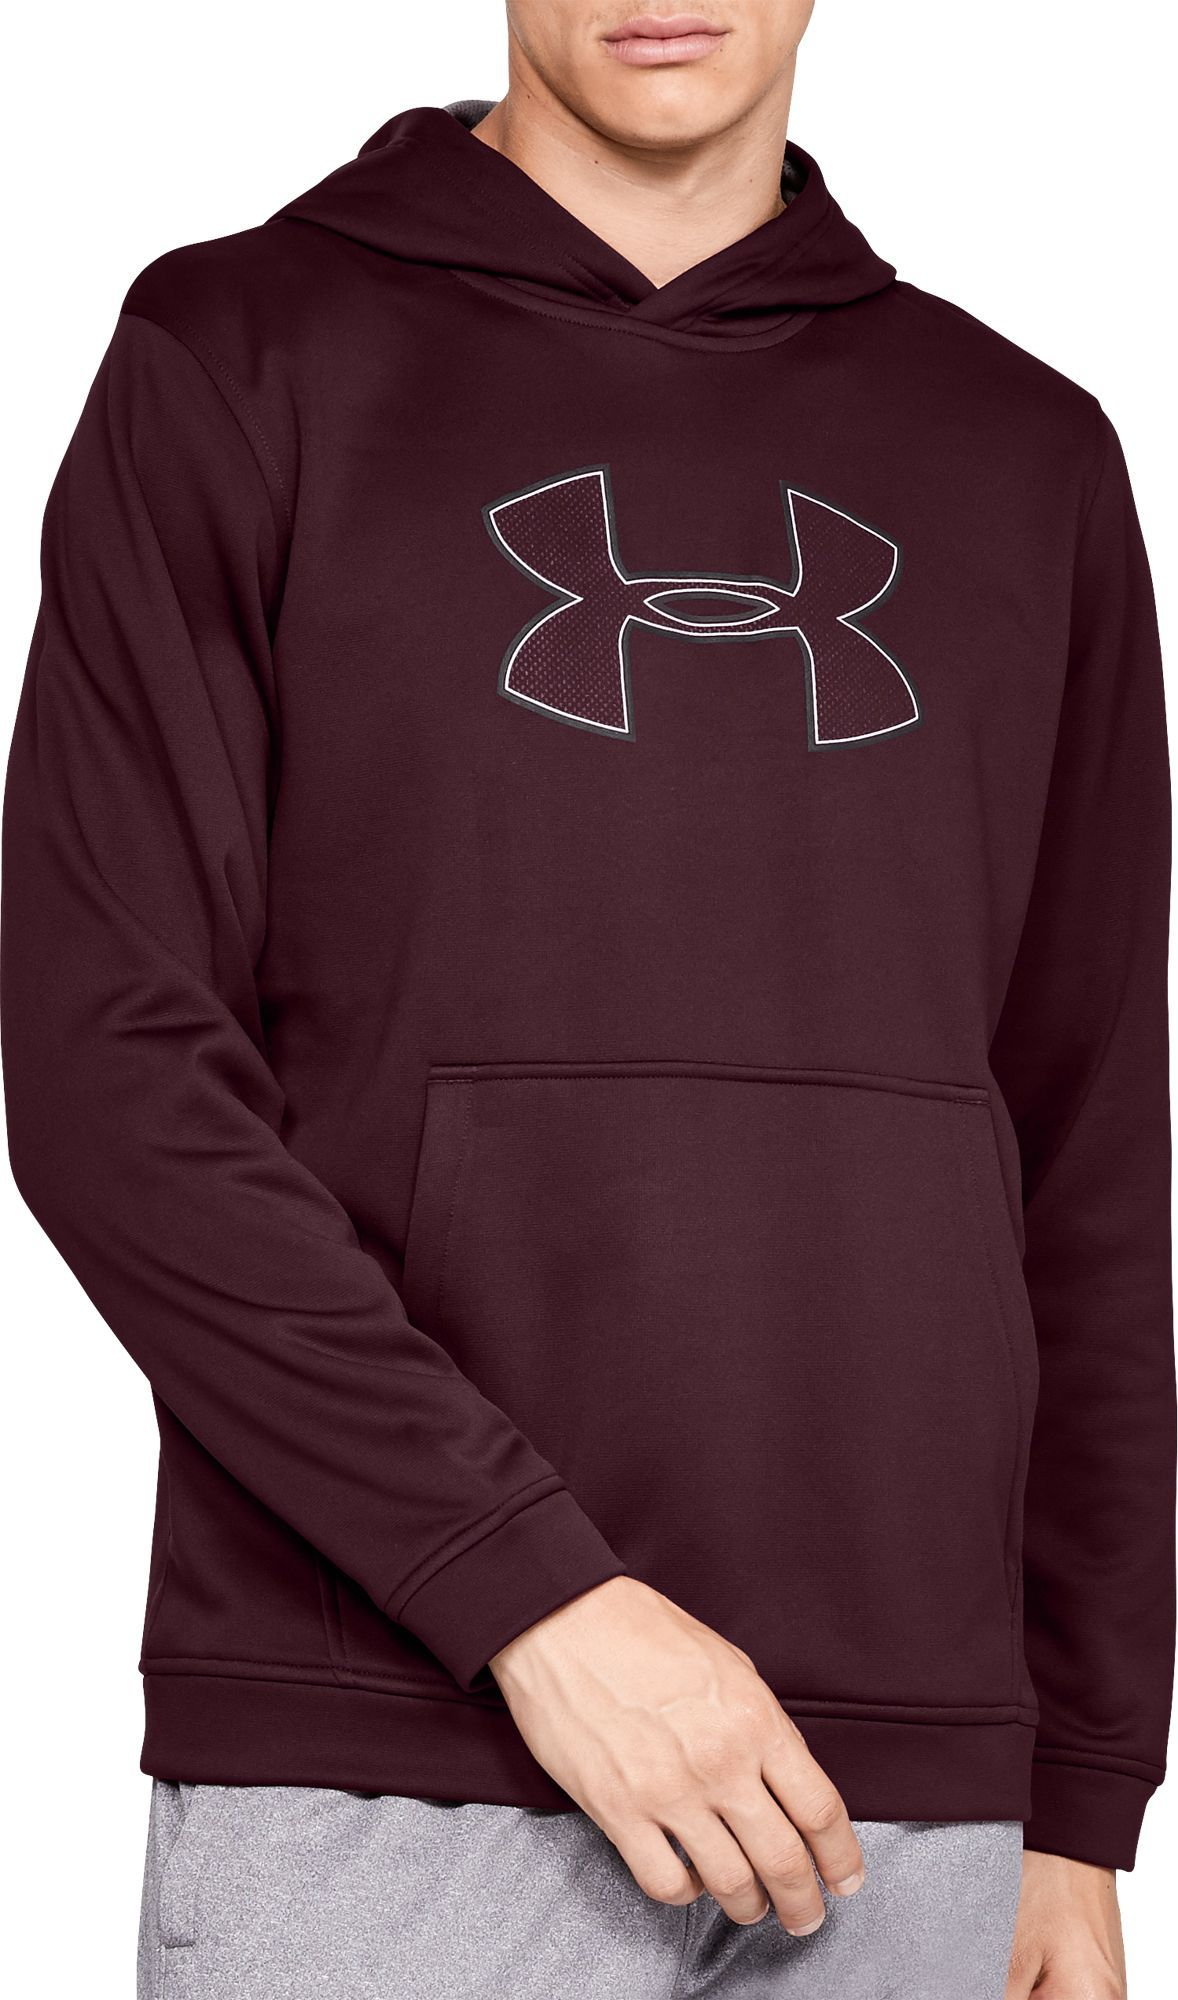 1f28e2a2a Under Armour Men's Performance Fleece Graphic Hoodie, Size: Small ...